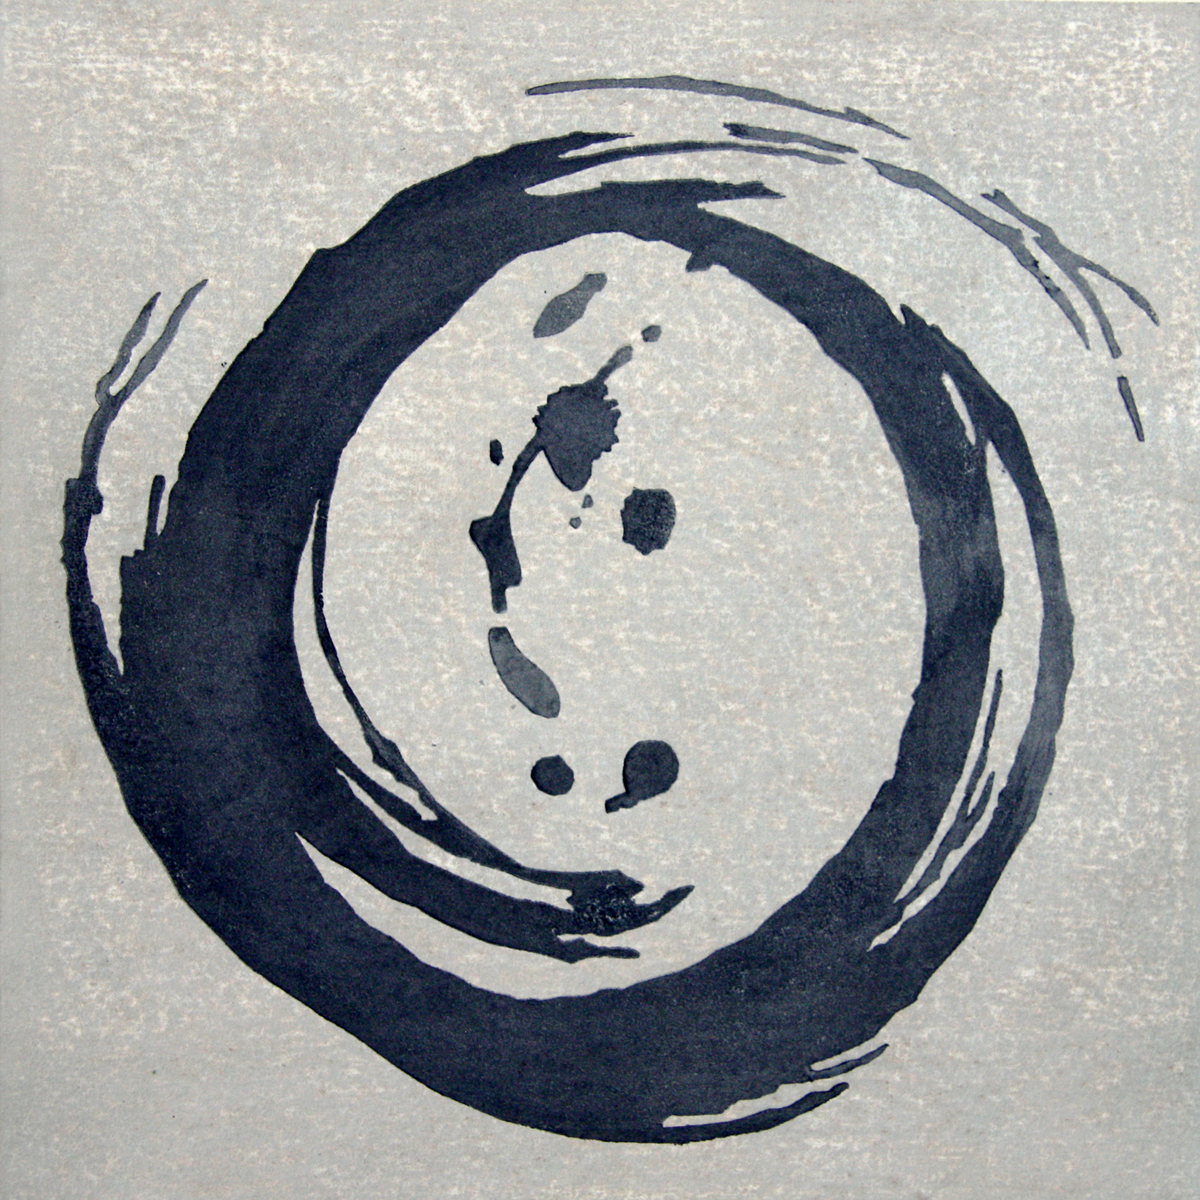 Enso 1 (large view)